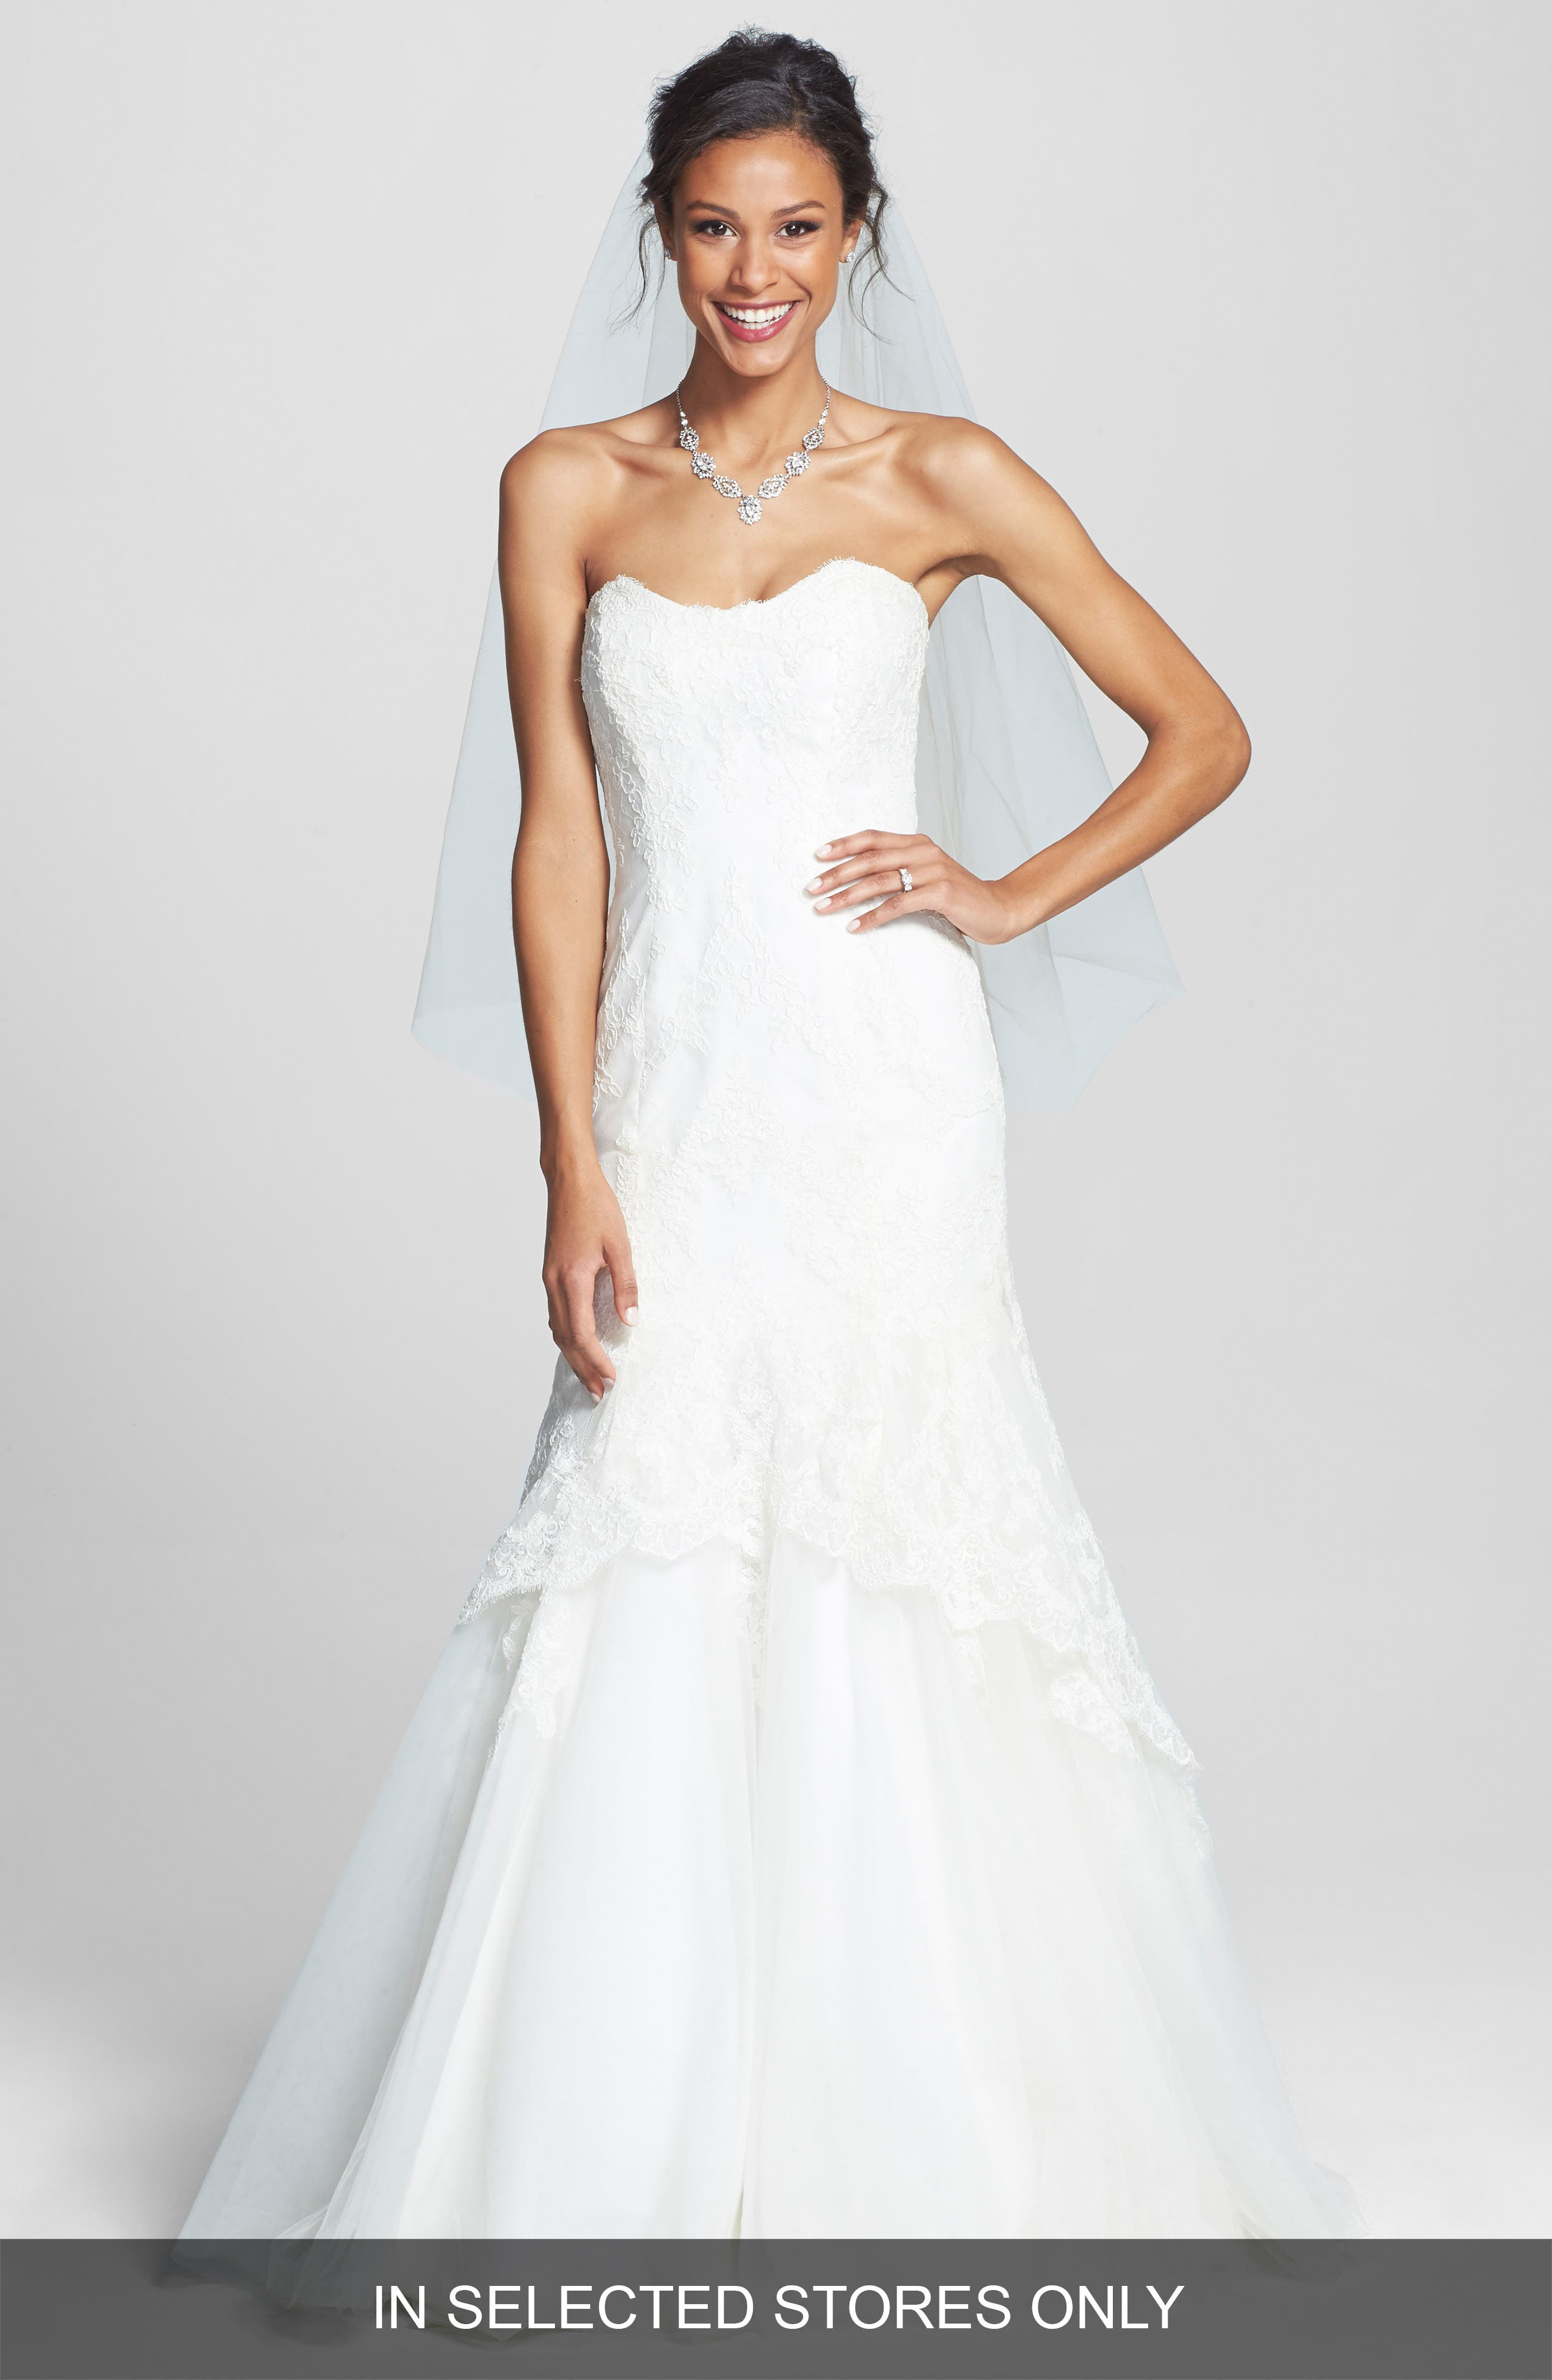 Main Image - BLISS Monique Lhuillier Lace Overlay Tulle Trumpet Wedding Dress